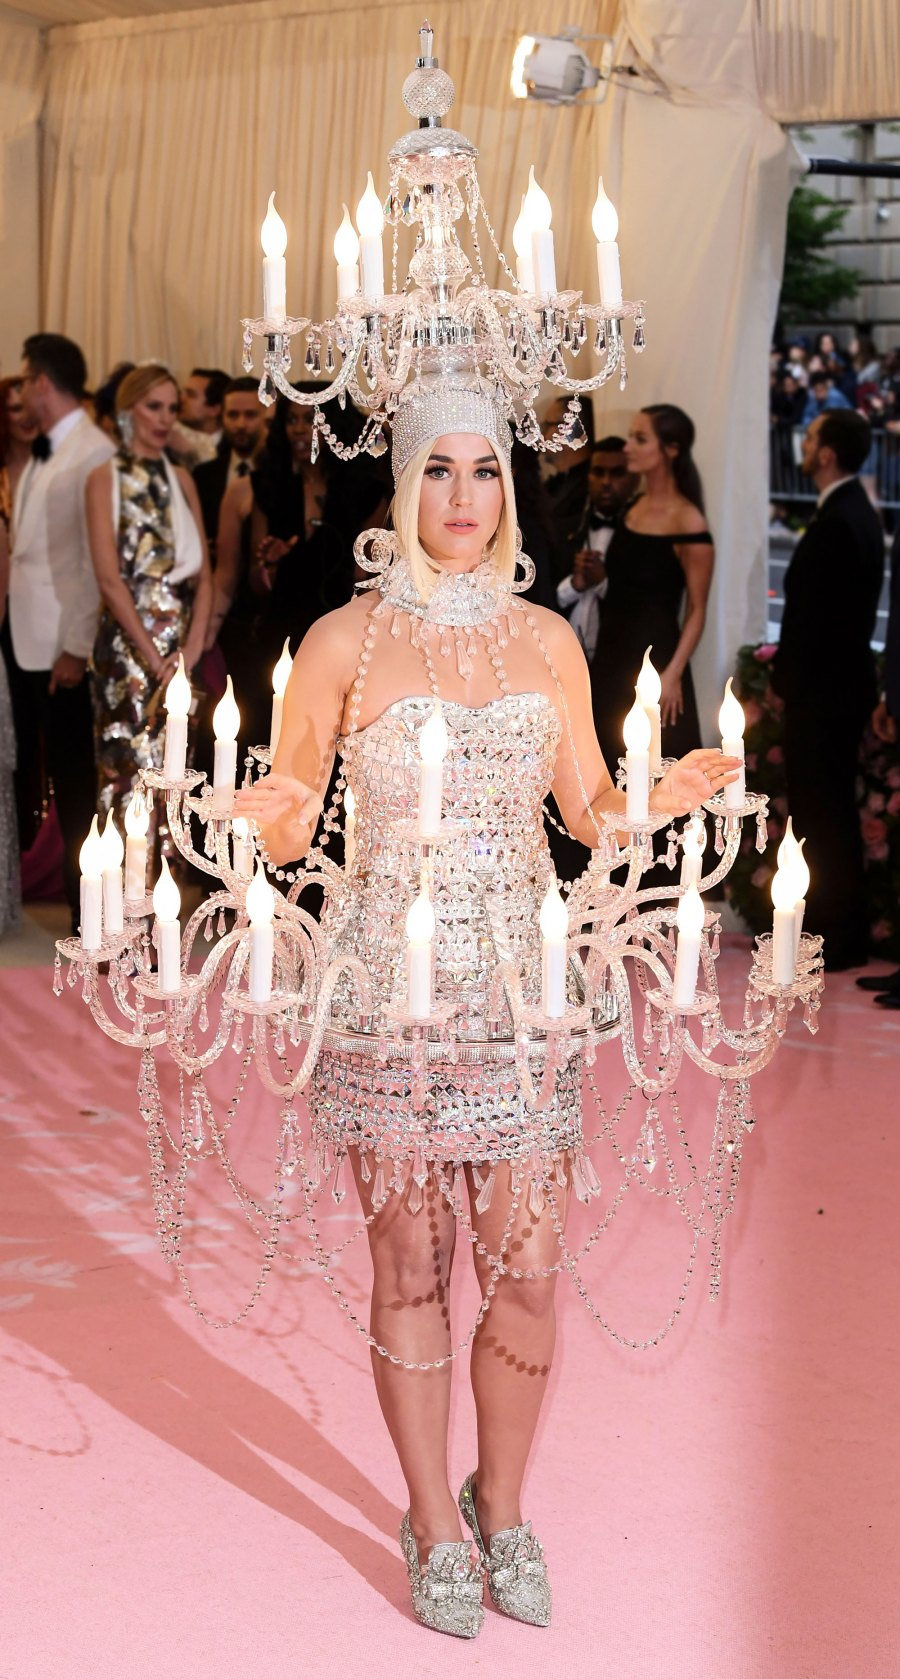 Relive the Wildest Met Gala Looks of All Time